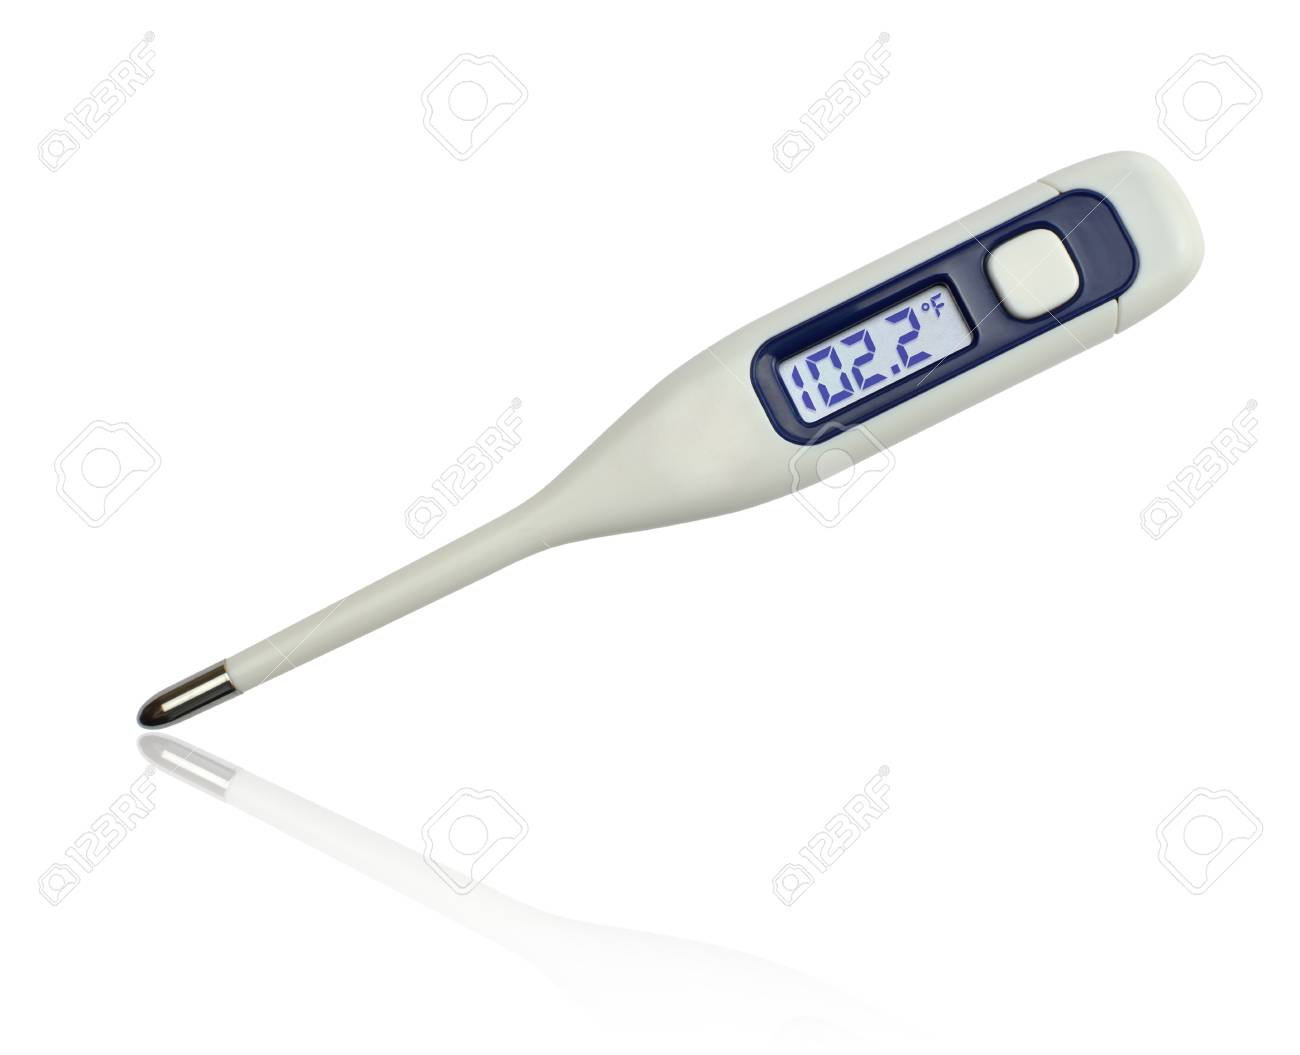 102 2 Degrees Fahrenheit On Clinical Electronic Thermometer On